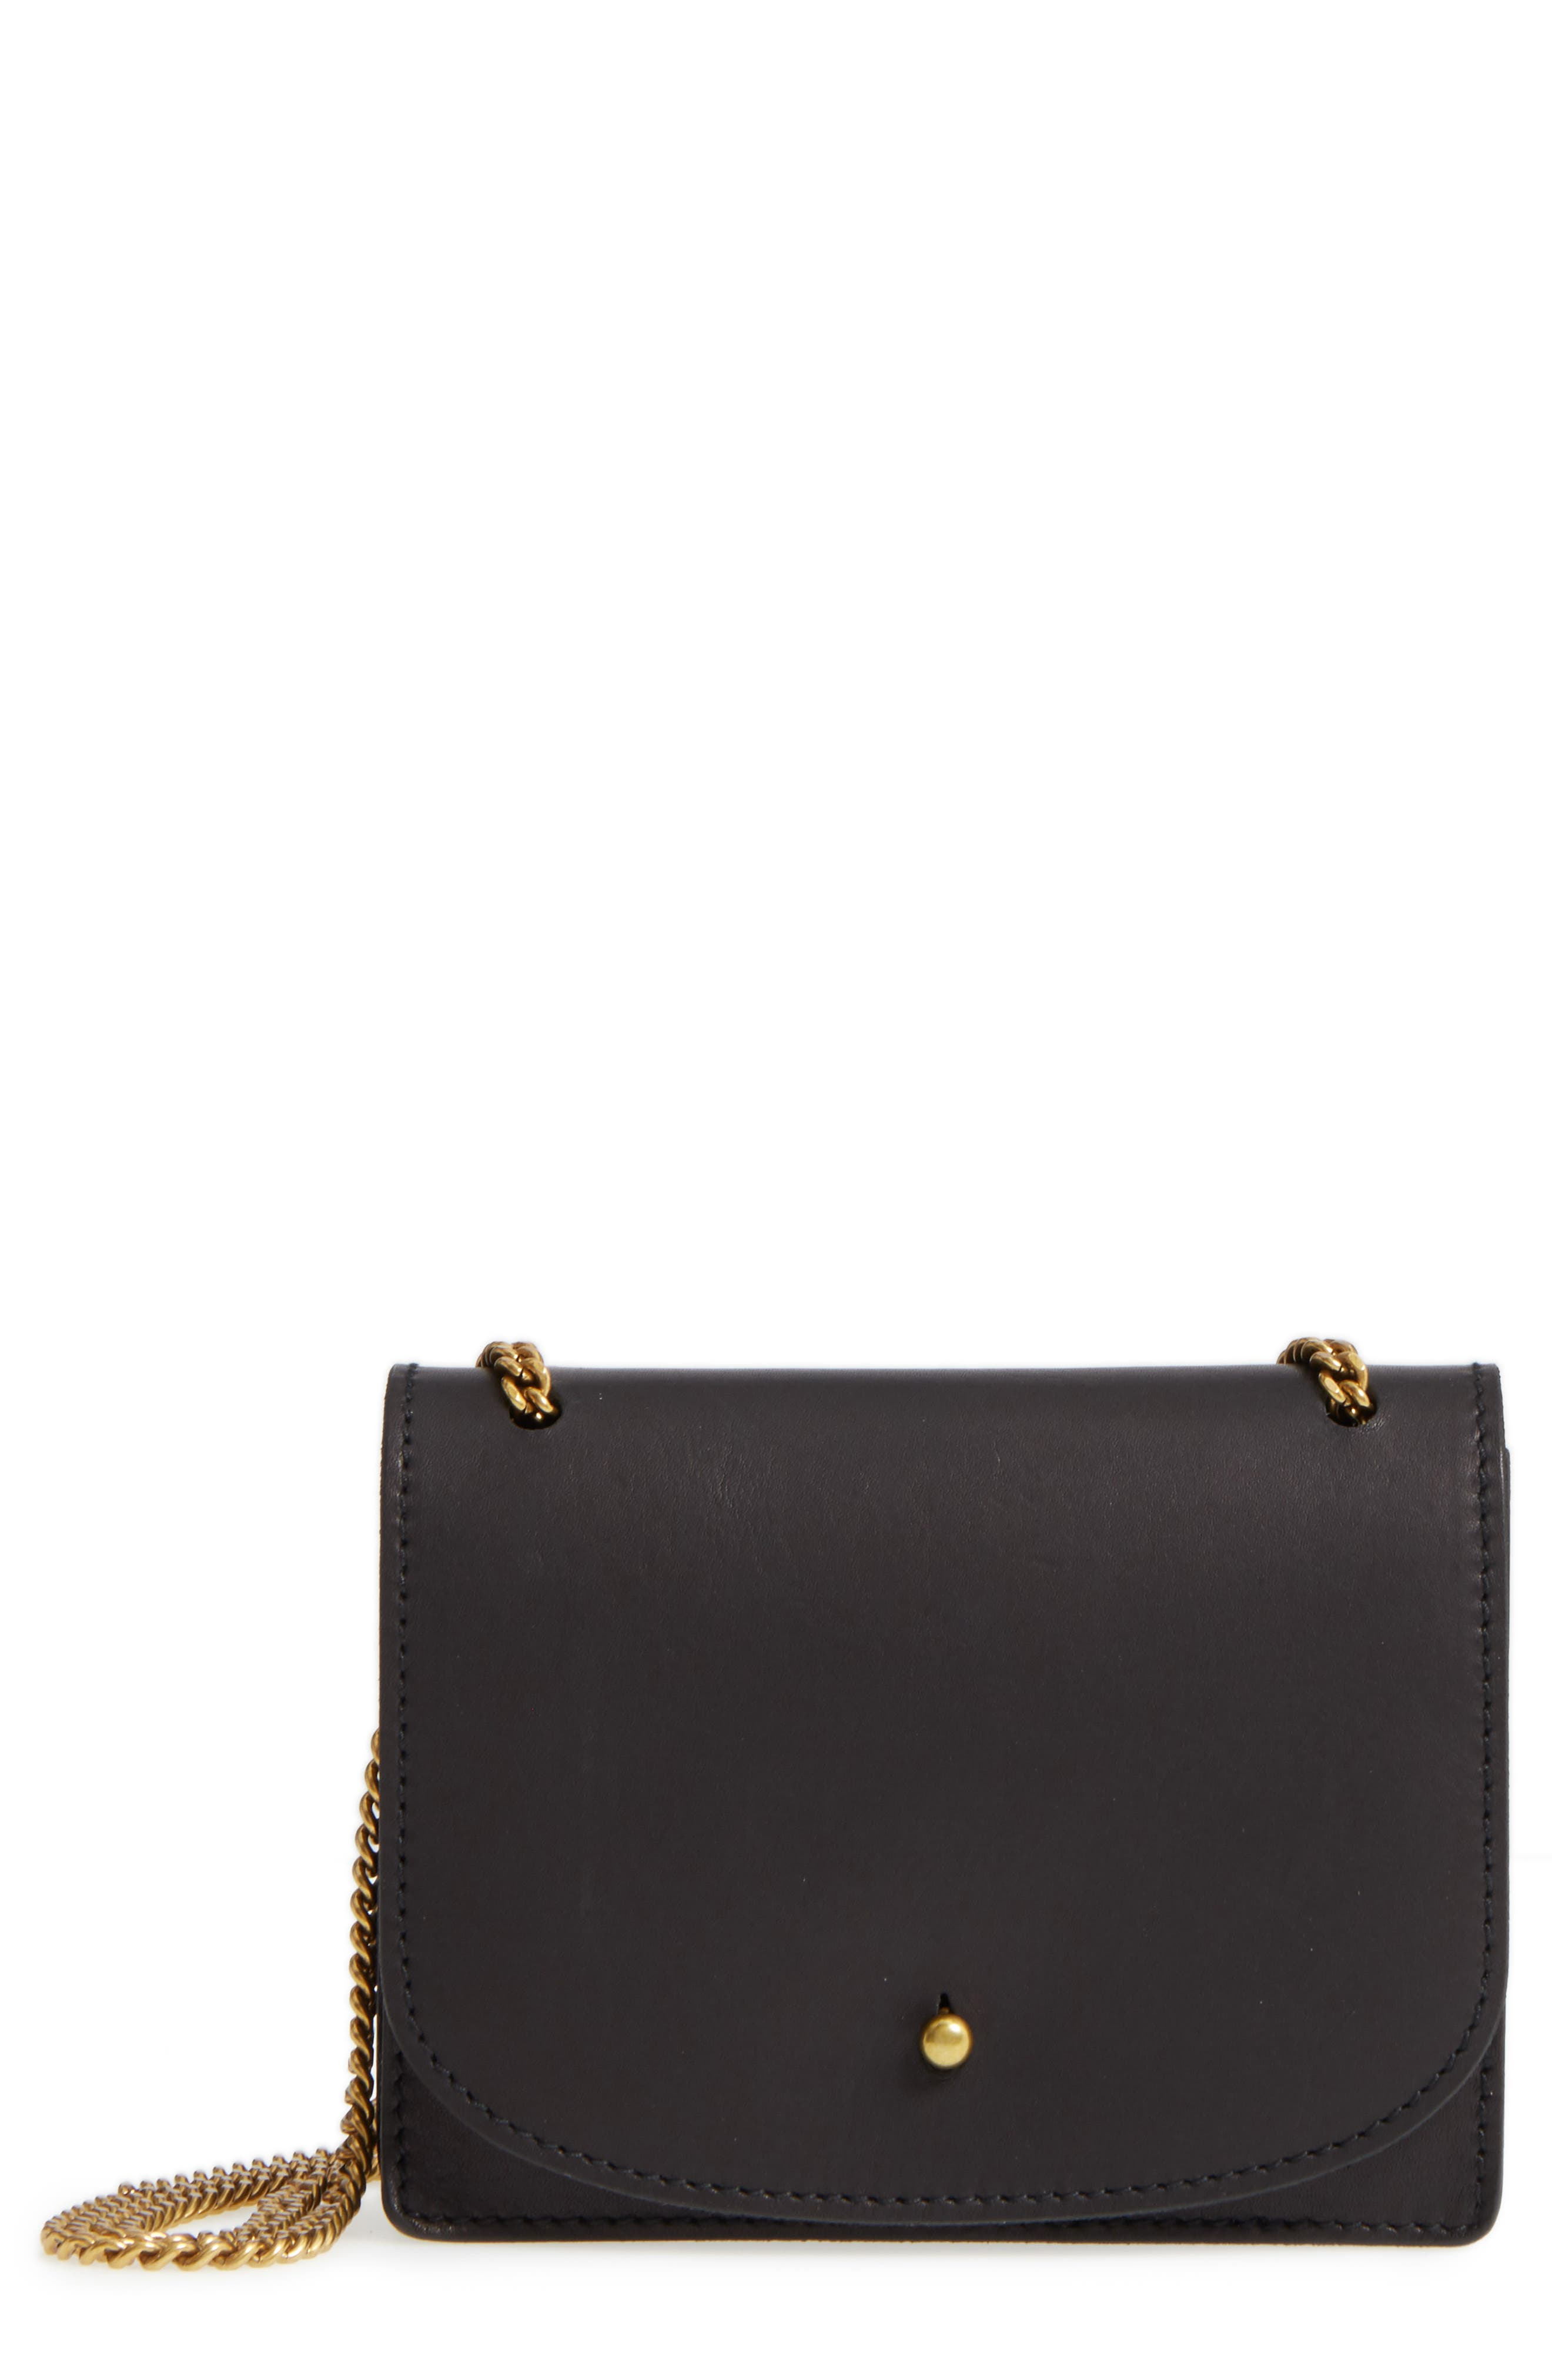 Main Image - Madewell Chain Leather Crossbody Bag